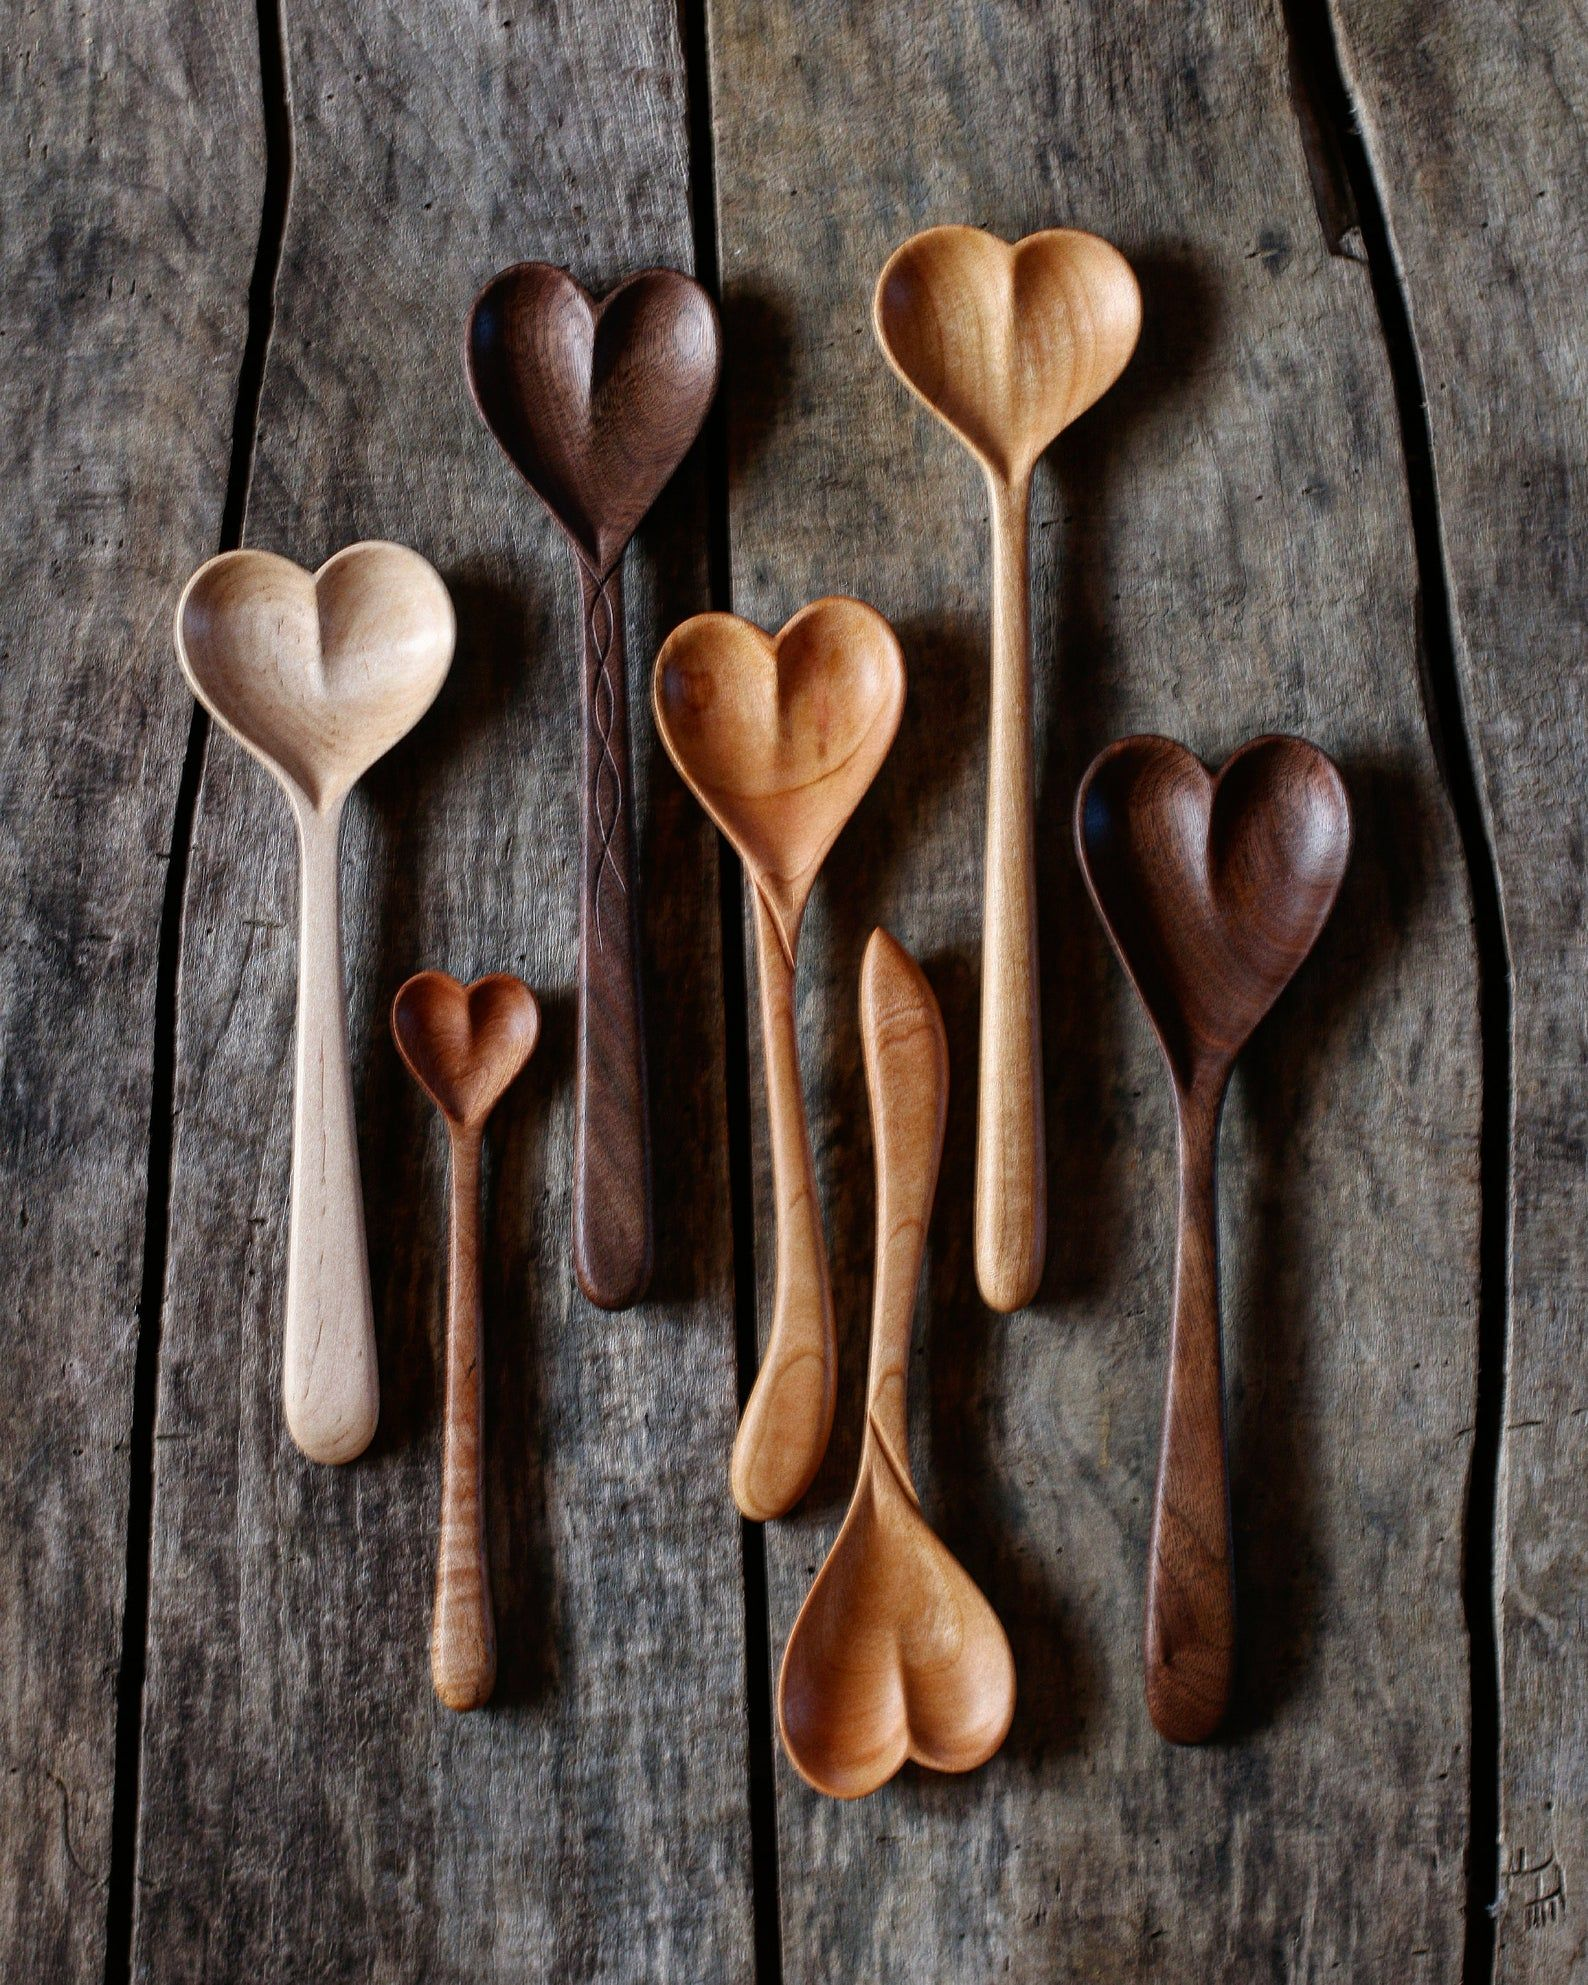 Wooden Heart Spoons Love Spoon Hand Carved Heart Spoon Handmade Cooking Serving Spoon Love Spoon Kitchen Utensil Dreamware Wood Spoon Carving Carved Spoons Love Spoons